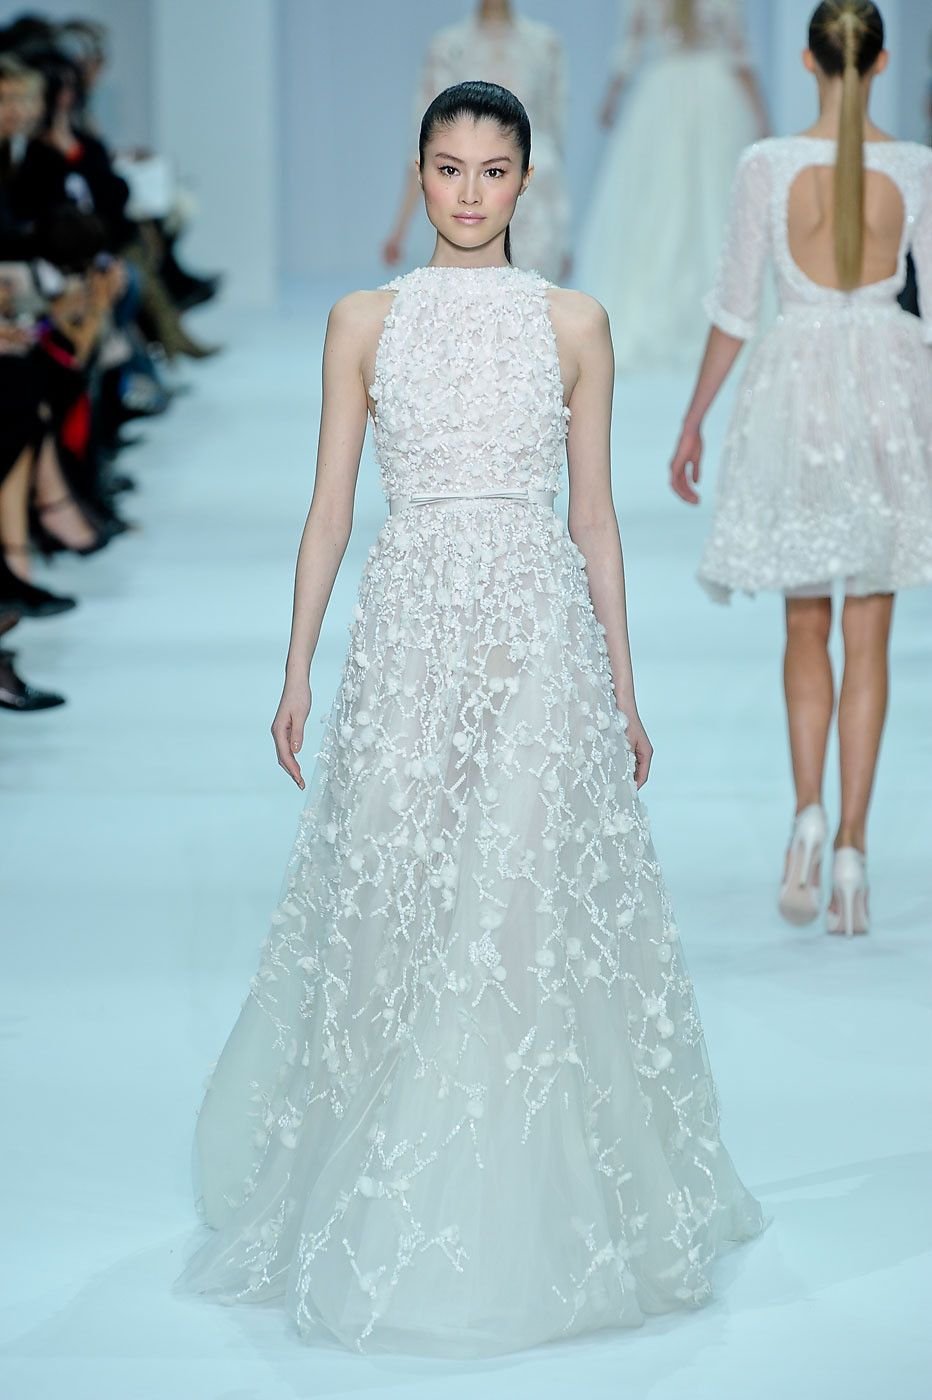 Elie saab at couture spring catwalk spring and couture